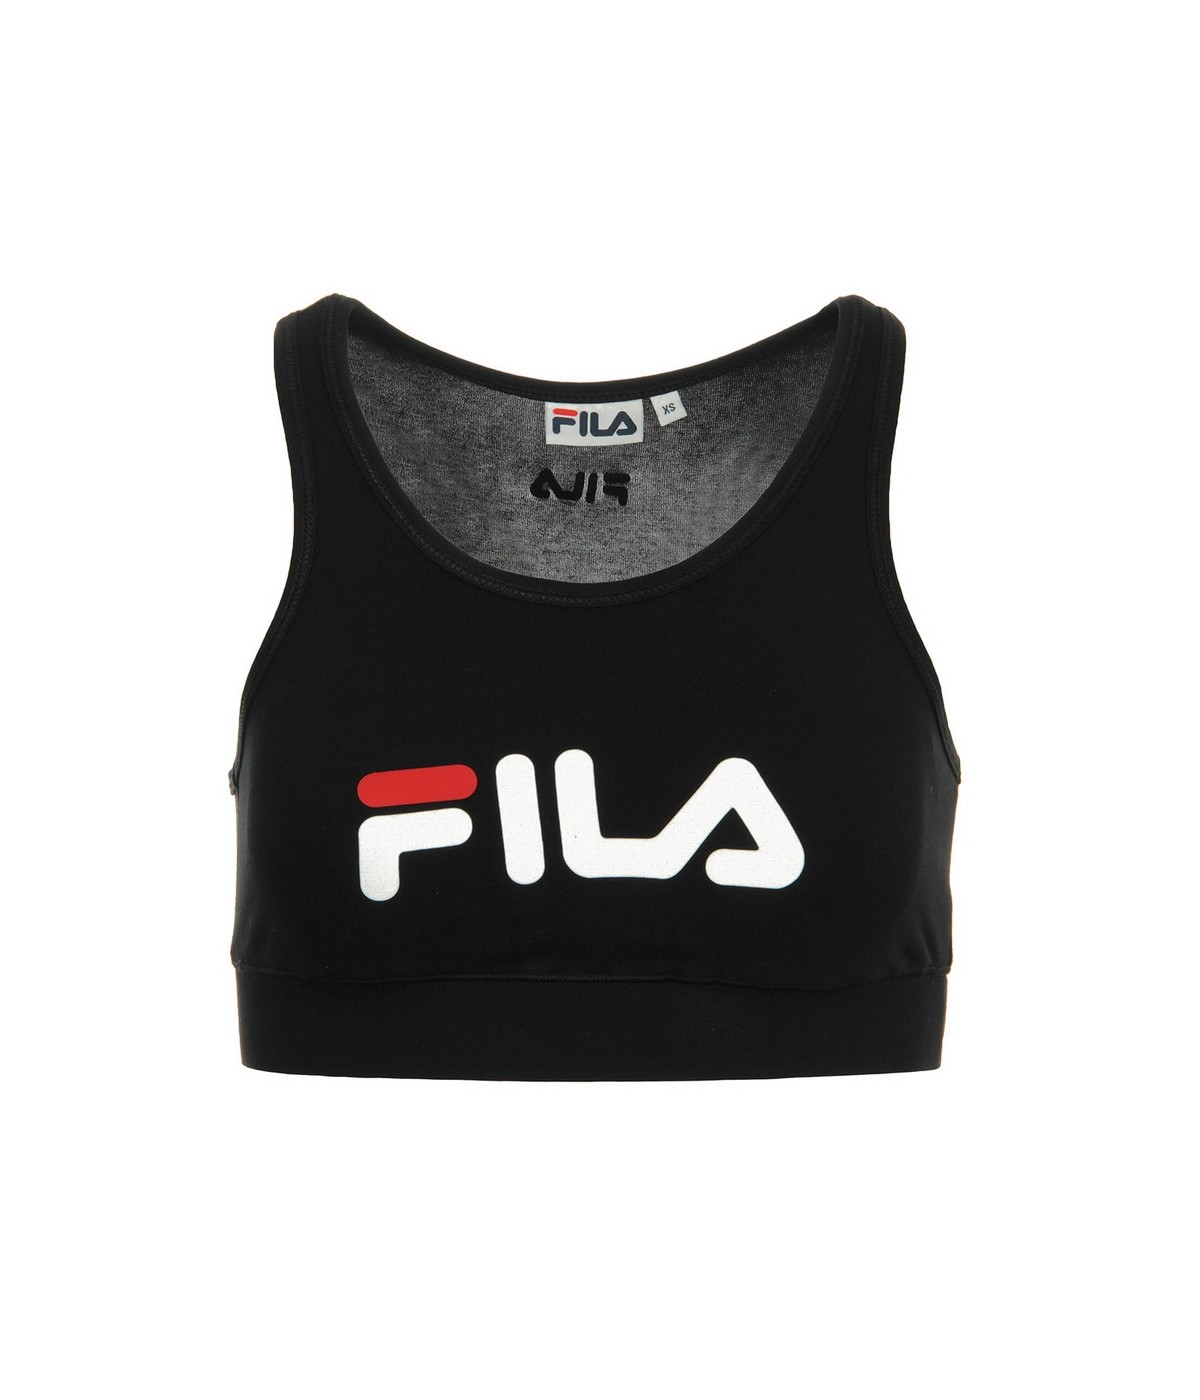 NoirShowroomvipTops Top Fila Femme Other Crop gYbyIf67v